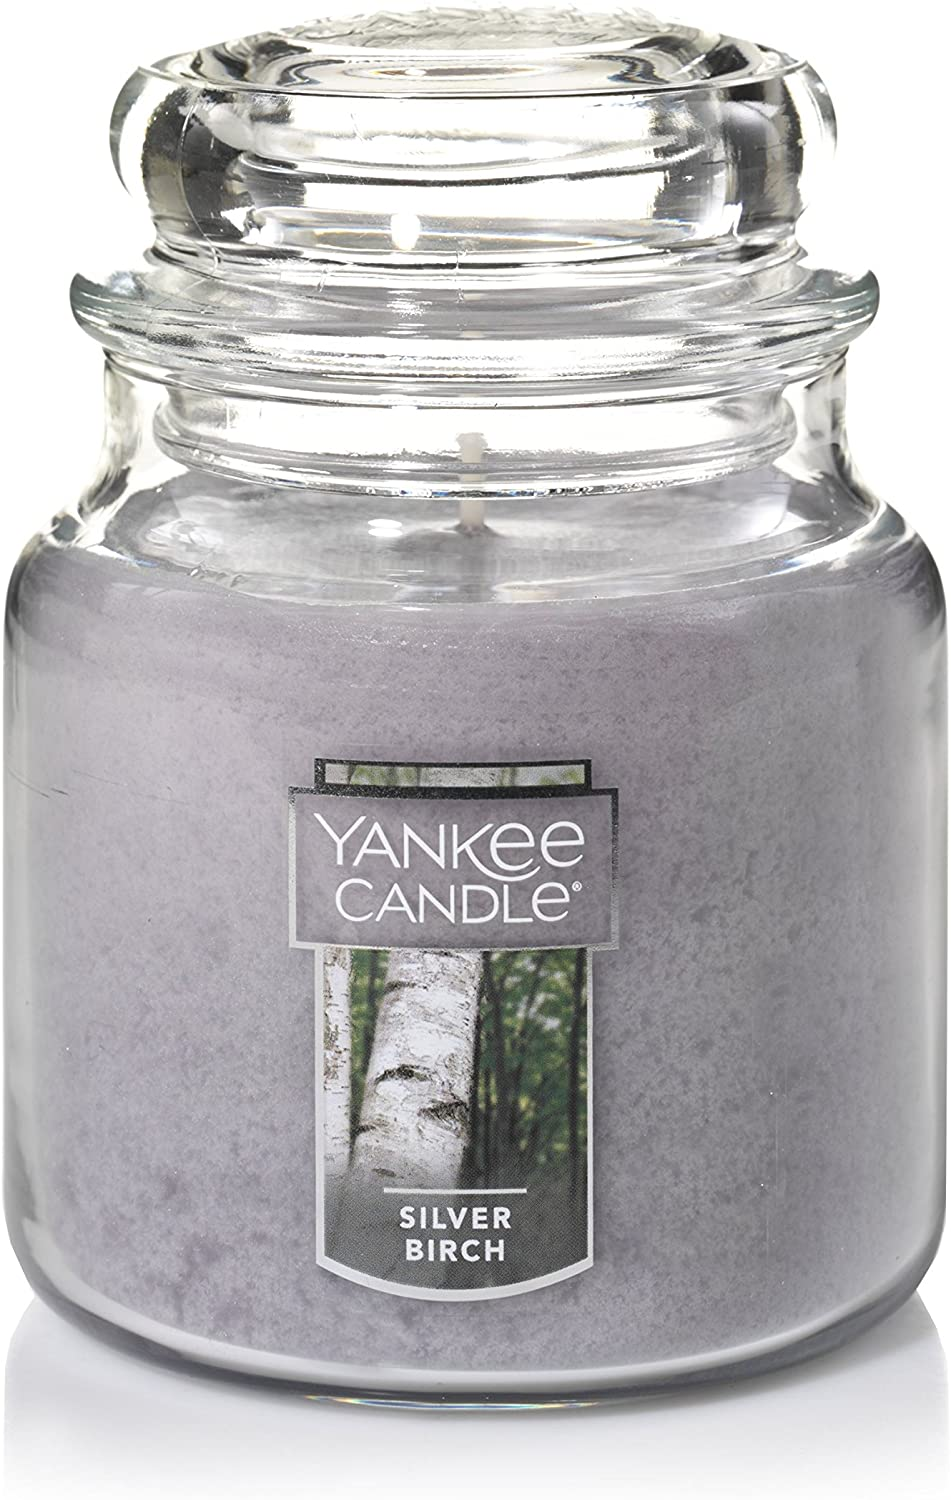 Yankee Candle Medium Jar Candle, Silver Birch